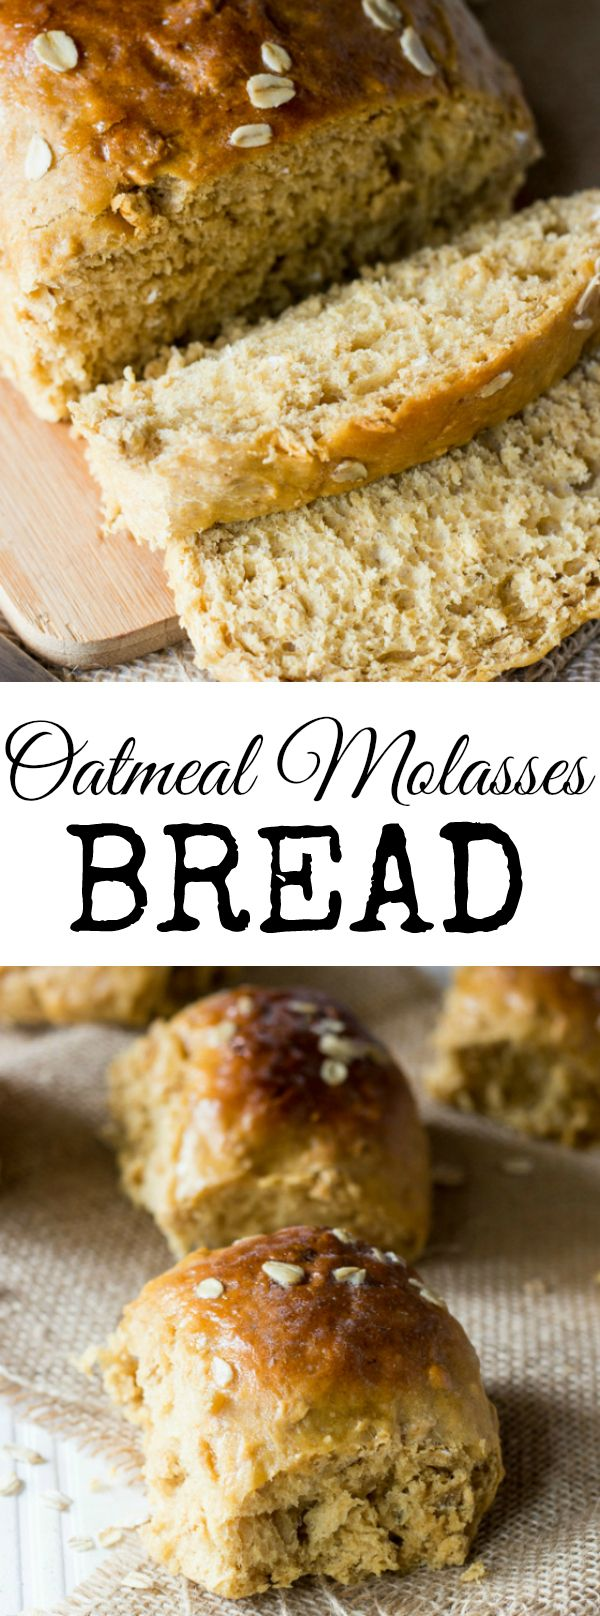 Sweet, soft and fluffy his Oatmeal Molasses Bread is a universal bread dough that works to make your favorite loaves, rolls or breadsticks. All my life I have been a bread lover. Like literally the biggest bread lover you could imagine. To this day I still cant help myself to[Read more]